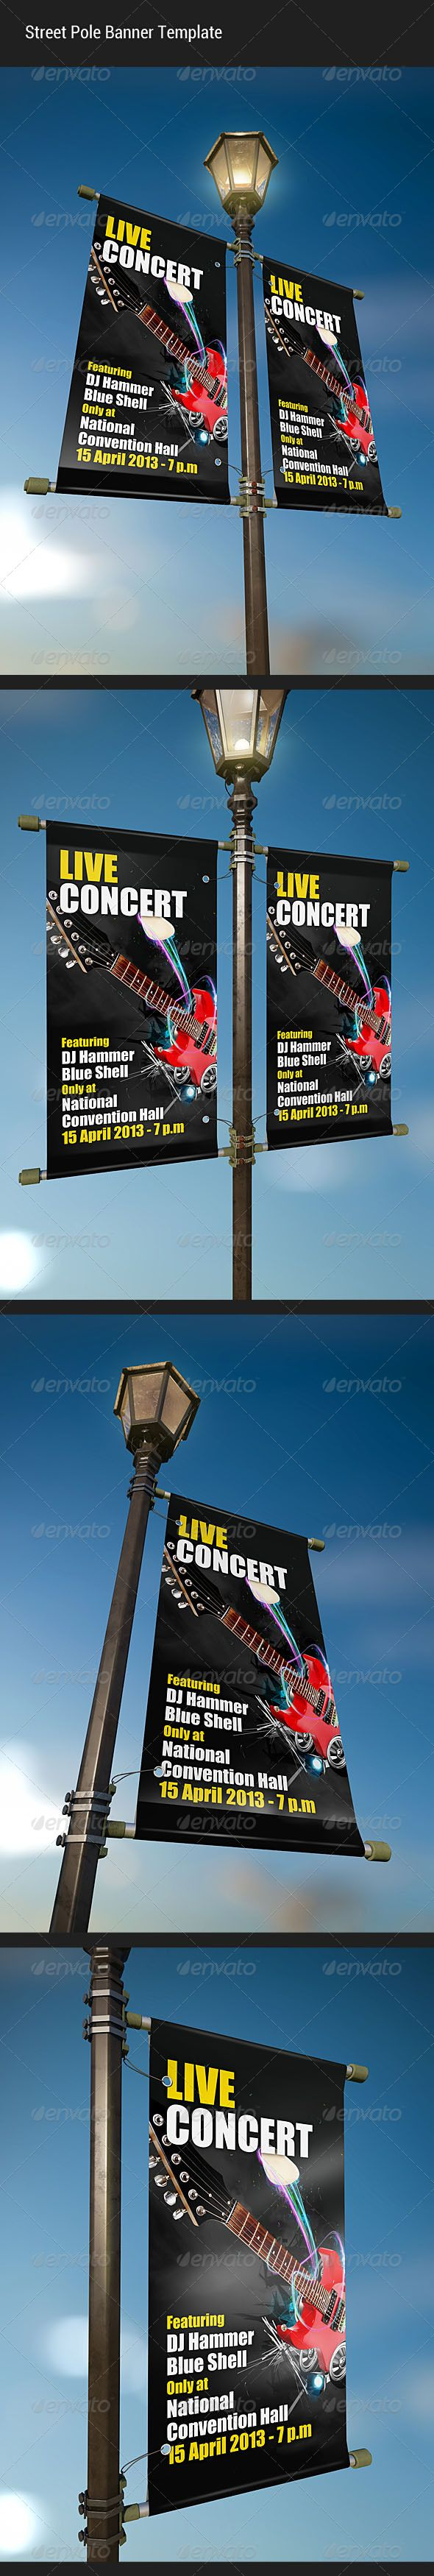 Street Pole Banner Mockup — Photoshop PSD #blue #sky • Available here → https://graphicriver.net/item/street-pole-banner-mockup/4548609?ref=pxcr